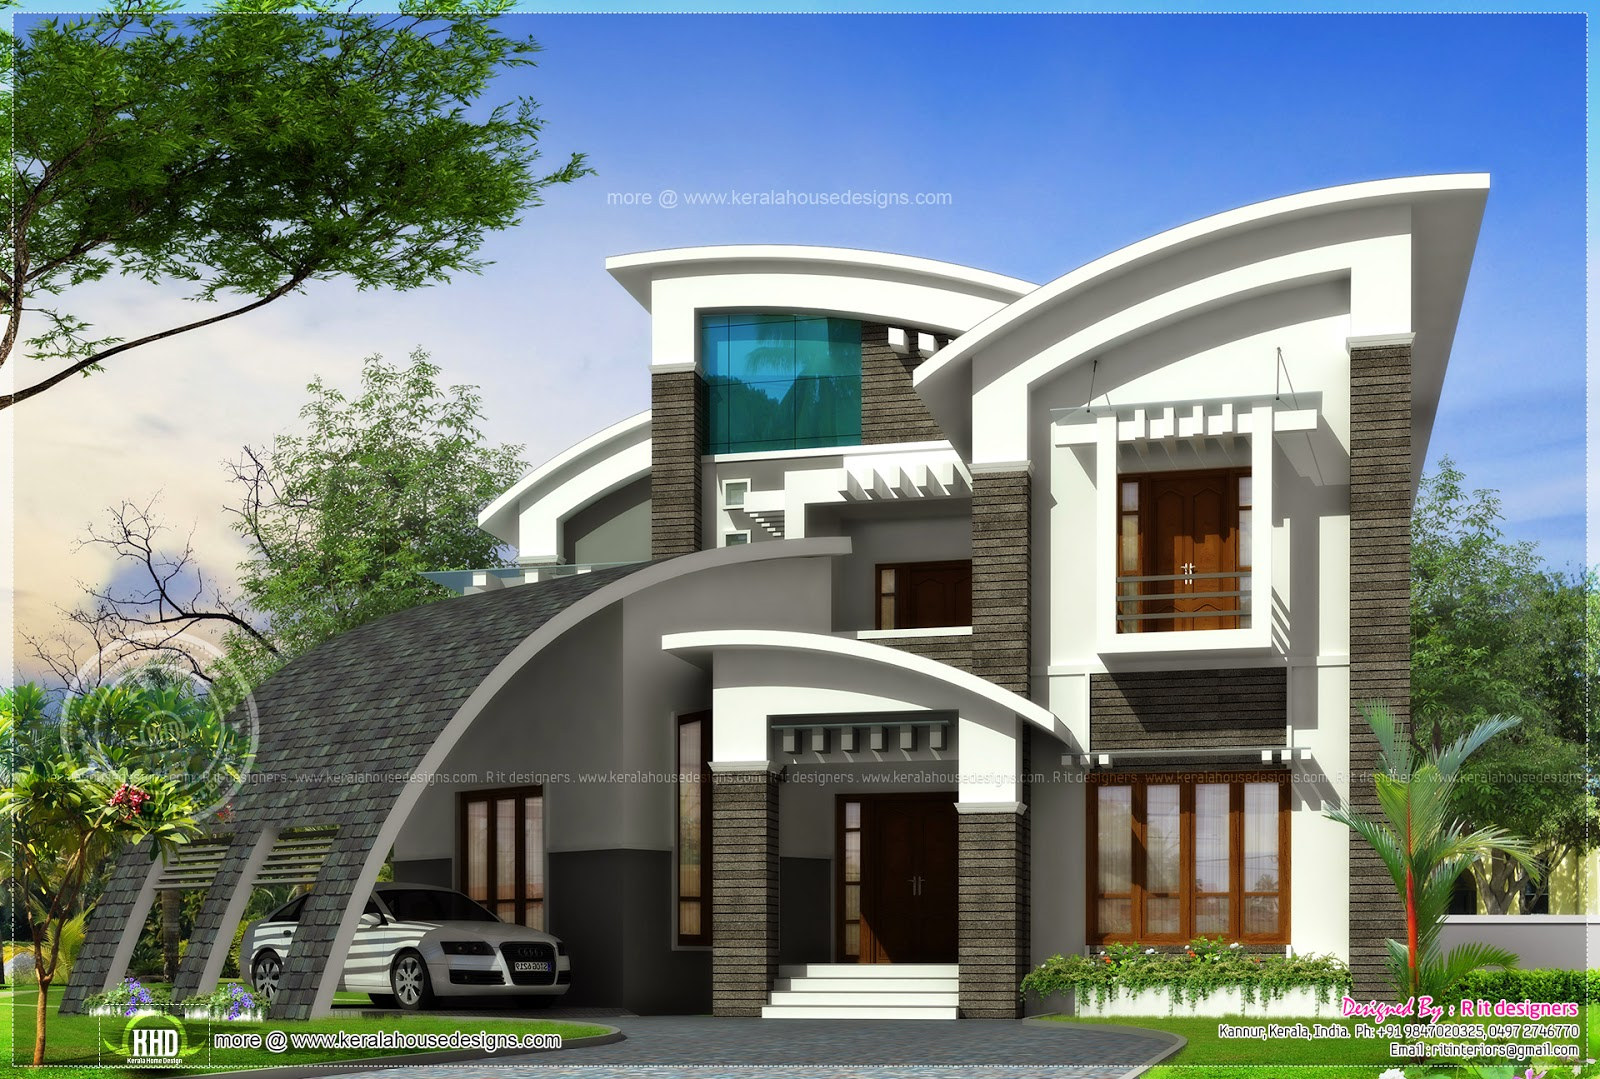 Super luxury ultra modern house design kerala home for Modern home blueprints